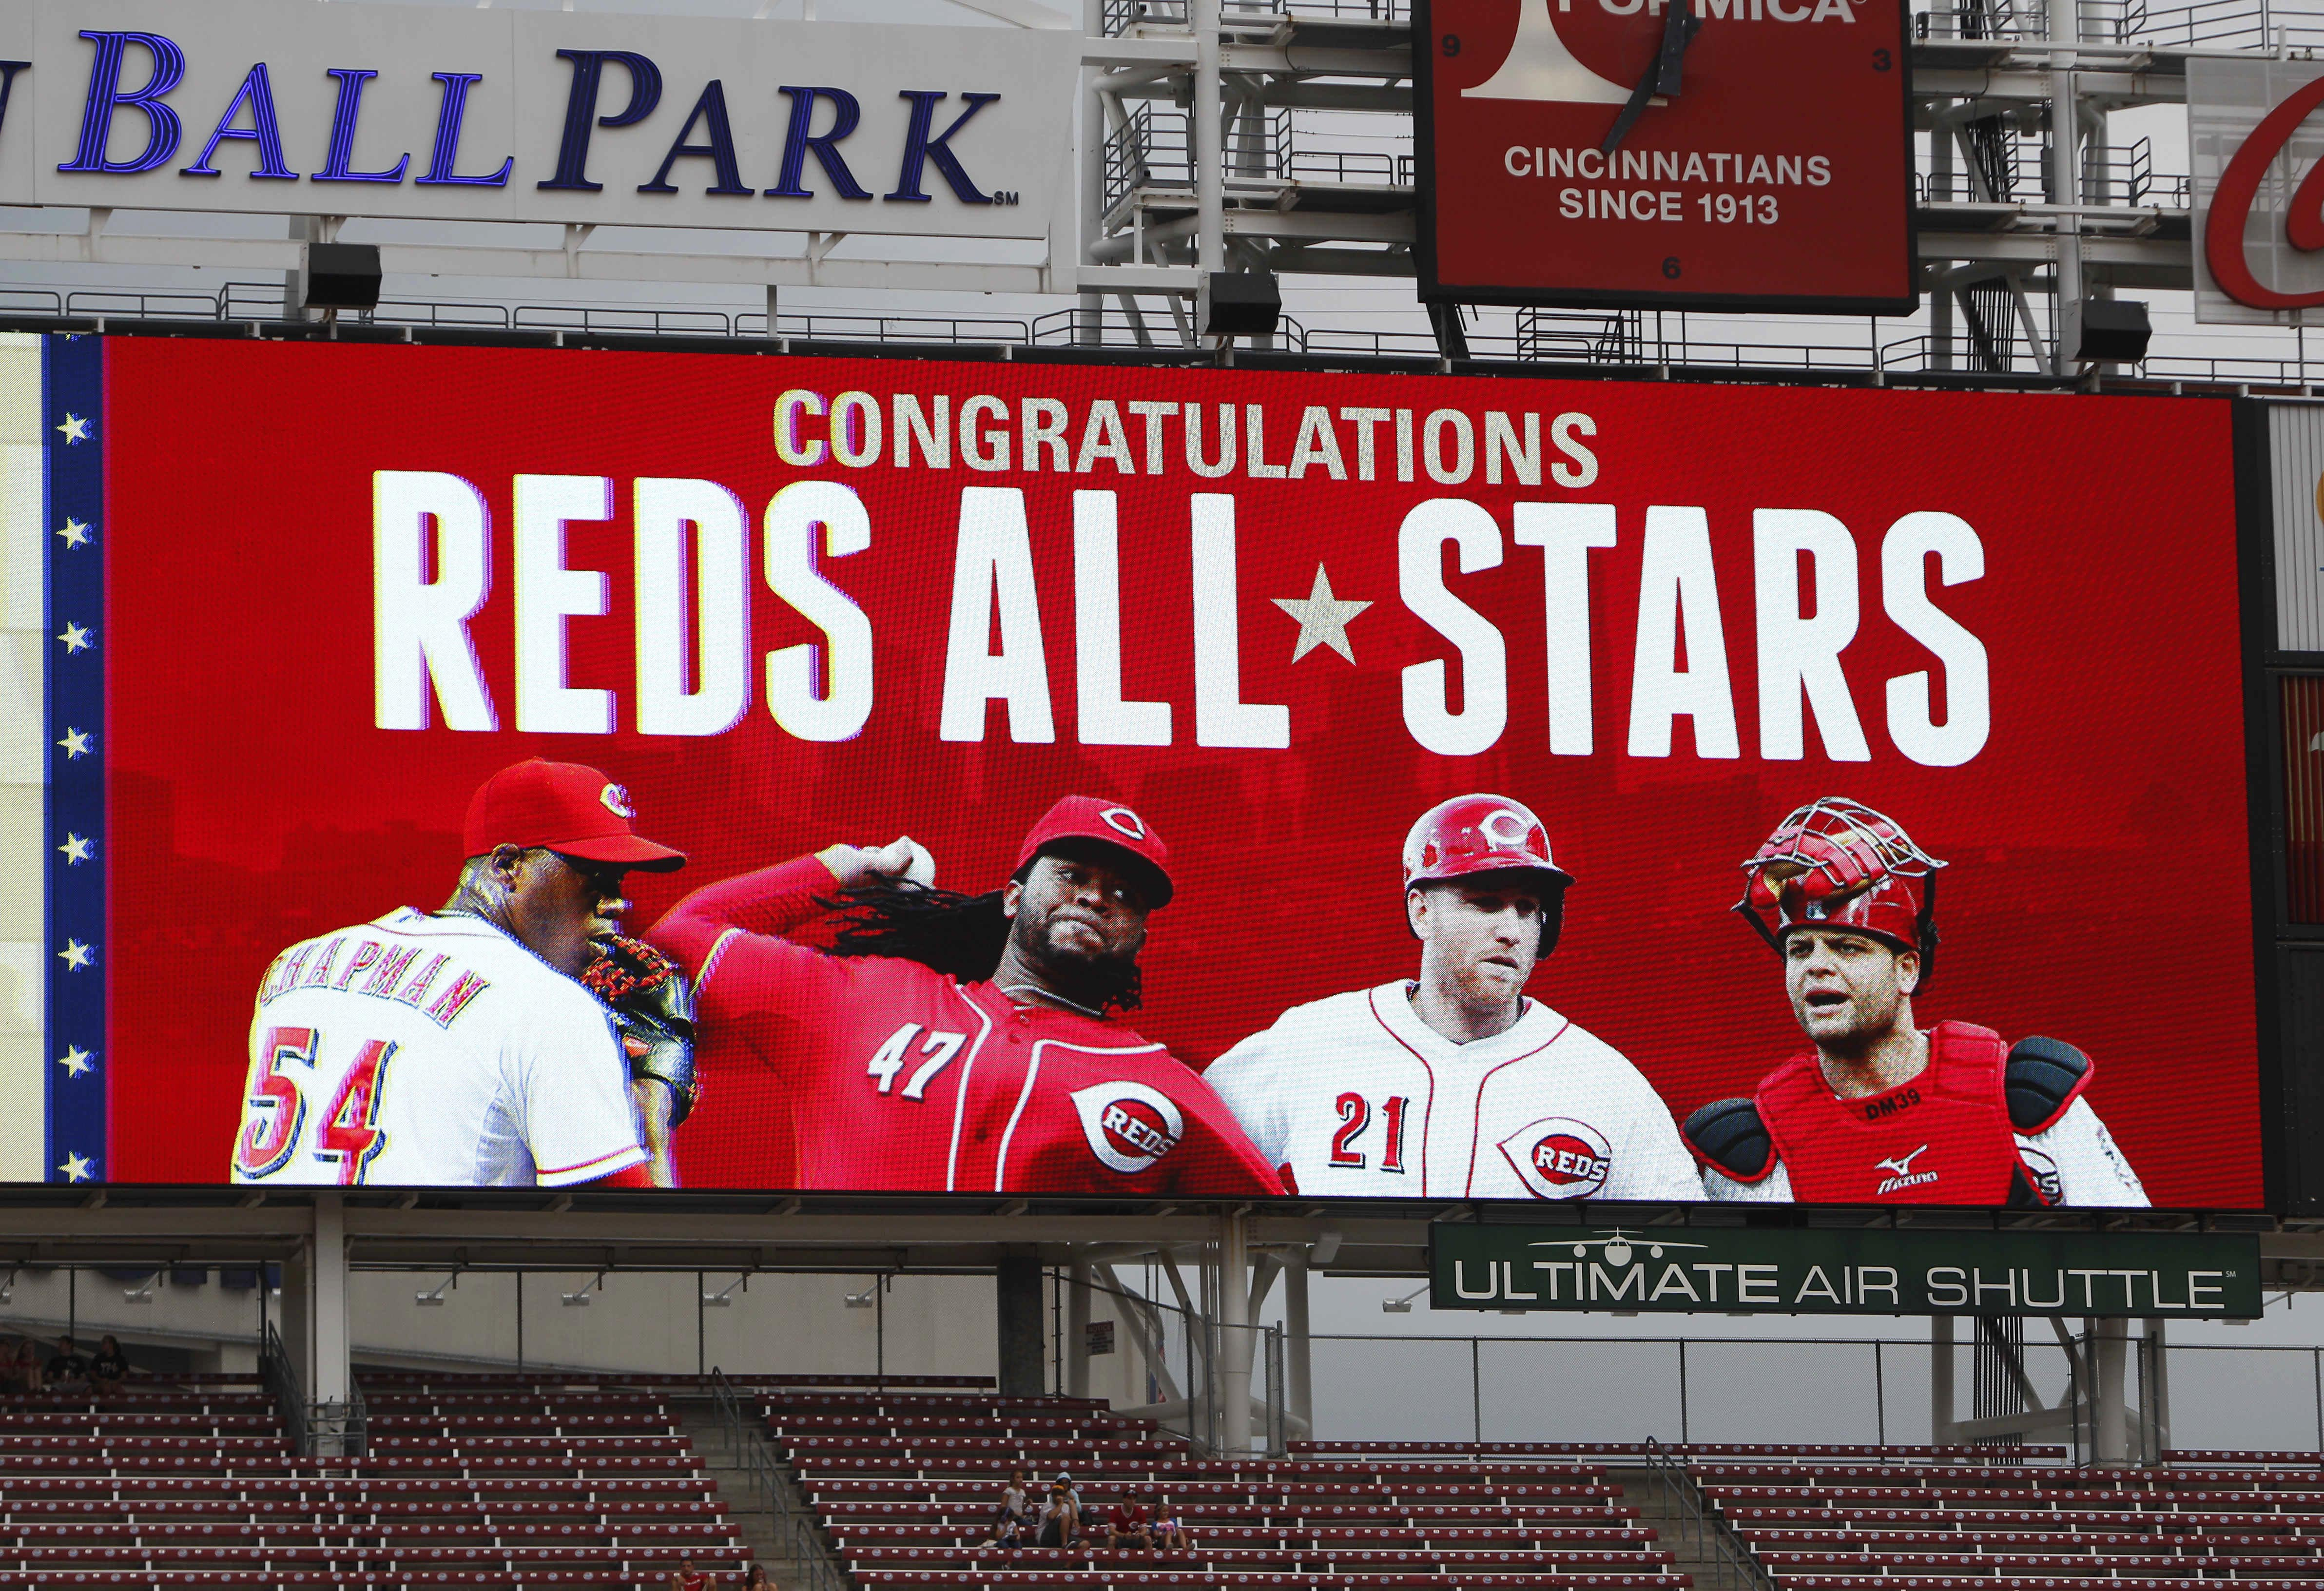 Say hey, baseball: The Reds are ready to trade (almost) everyone